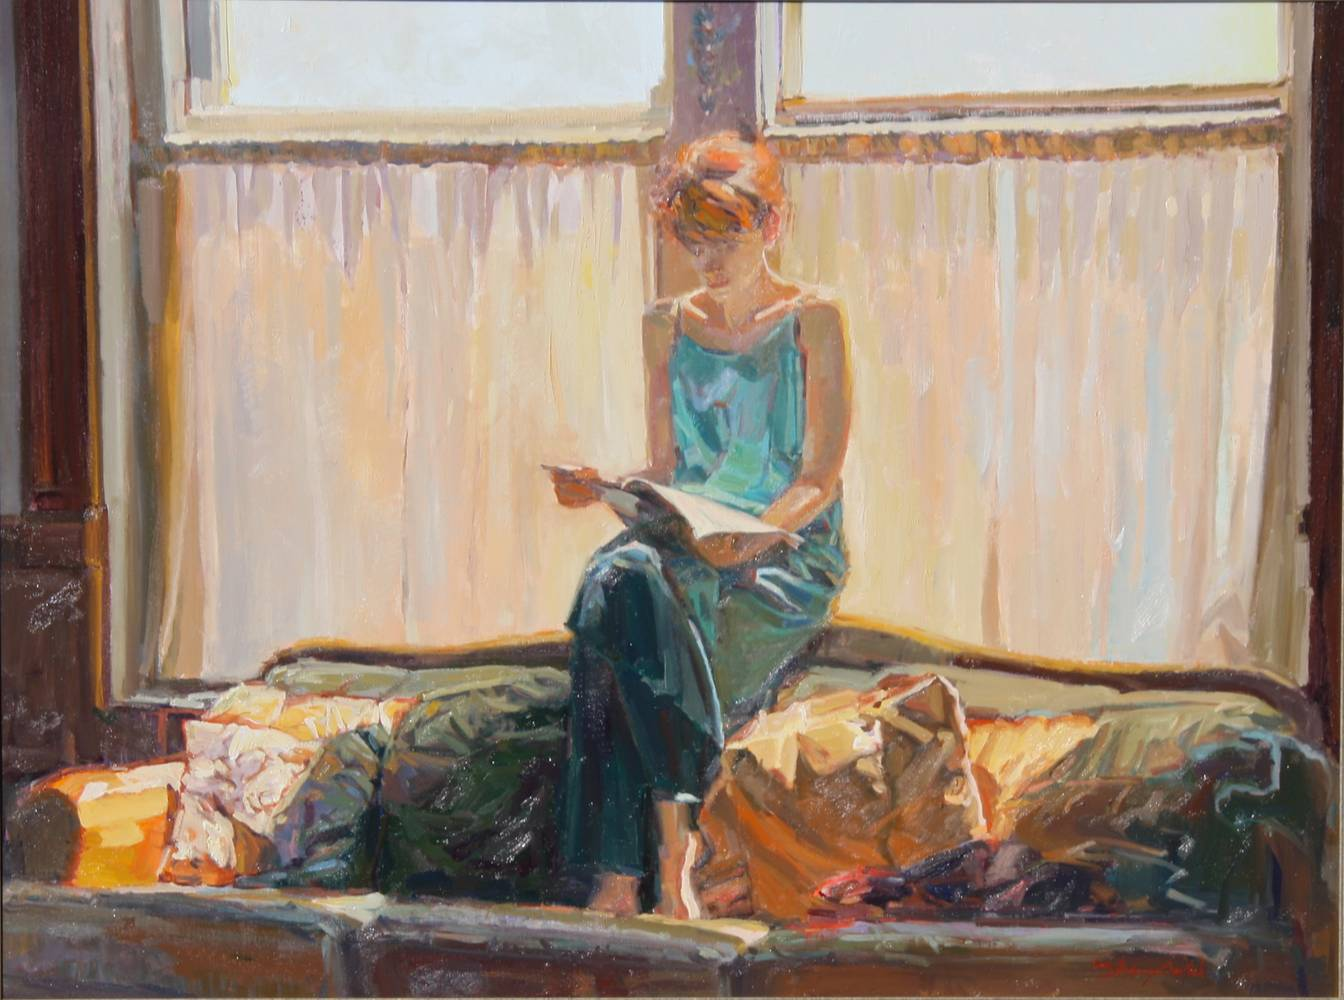 Oil painting Saturday Morning - Contact Gallery in St. George Utah http://fibonaccifinearts.com/index.php/contact by Susette Gertsch